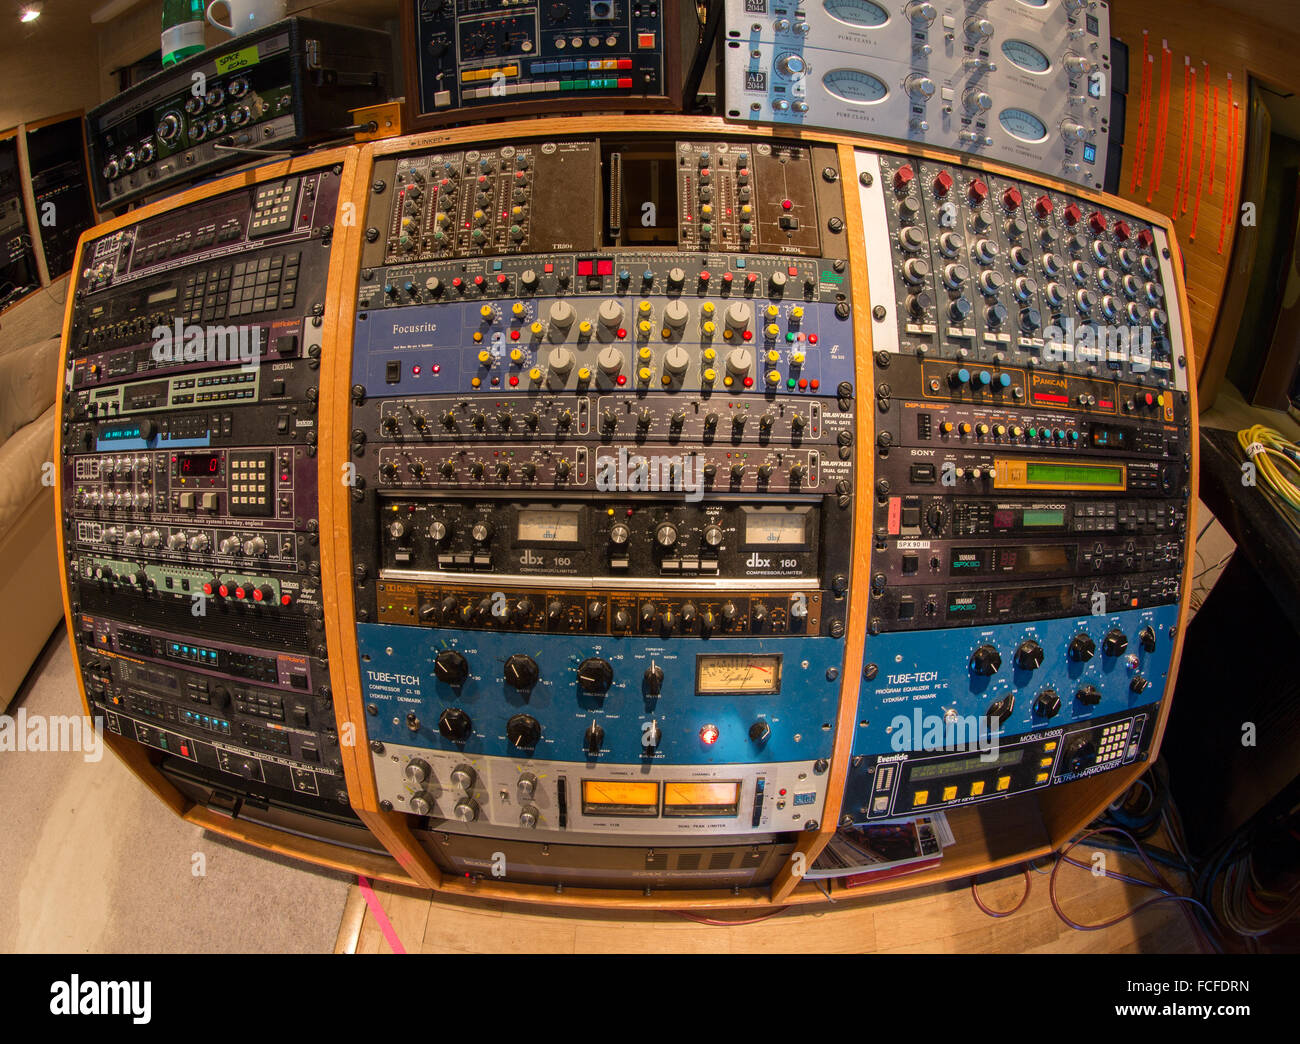 music recording studio effects rack, equalizers, compressors, digital delays, digital effects processors, harmonizers Stock Photo